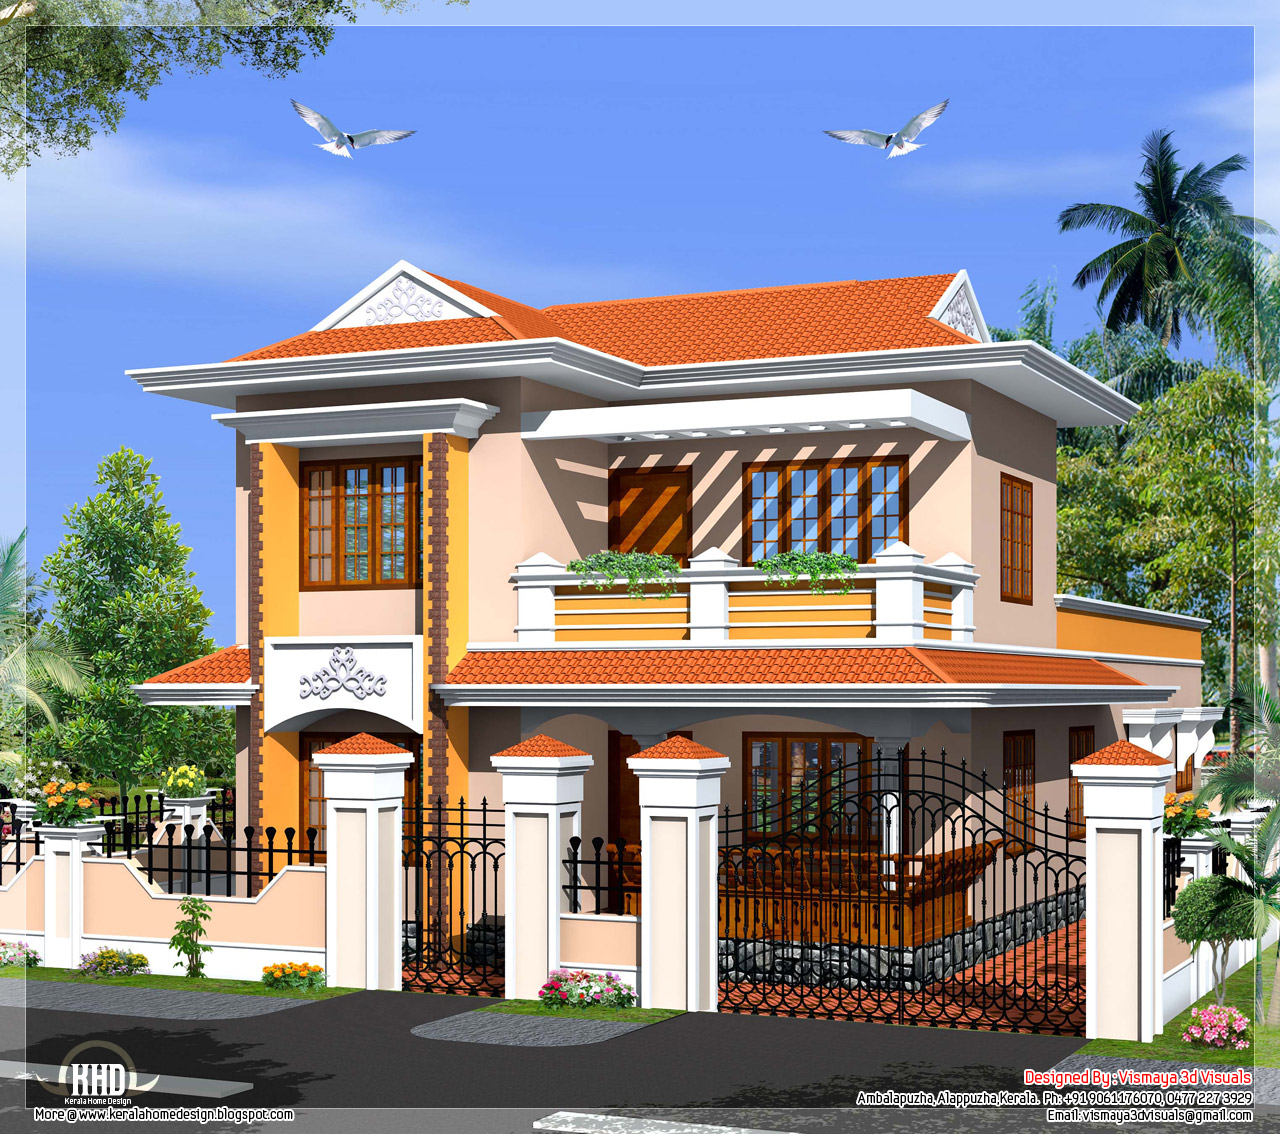 Kerala Model Villa In 2110 In Square Feet Kerala Home: villa designs india